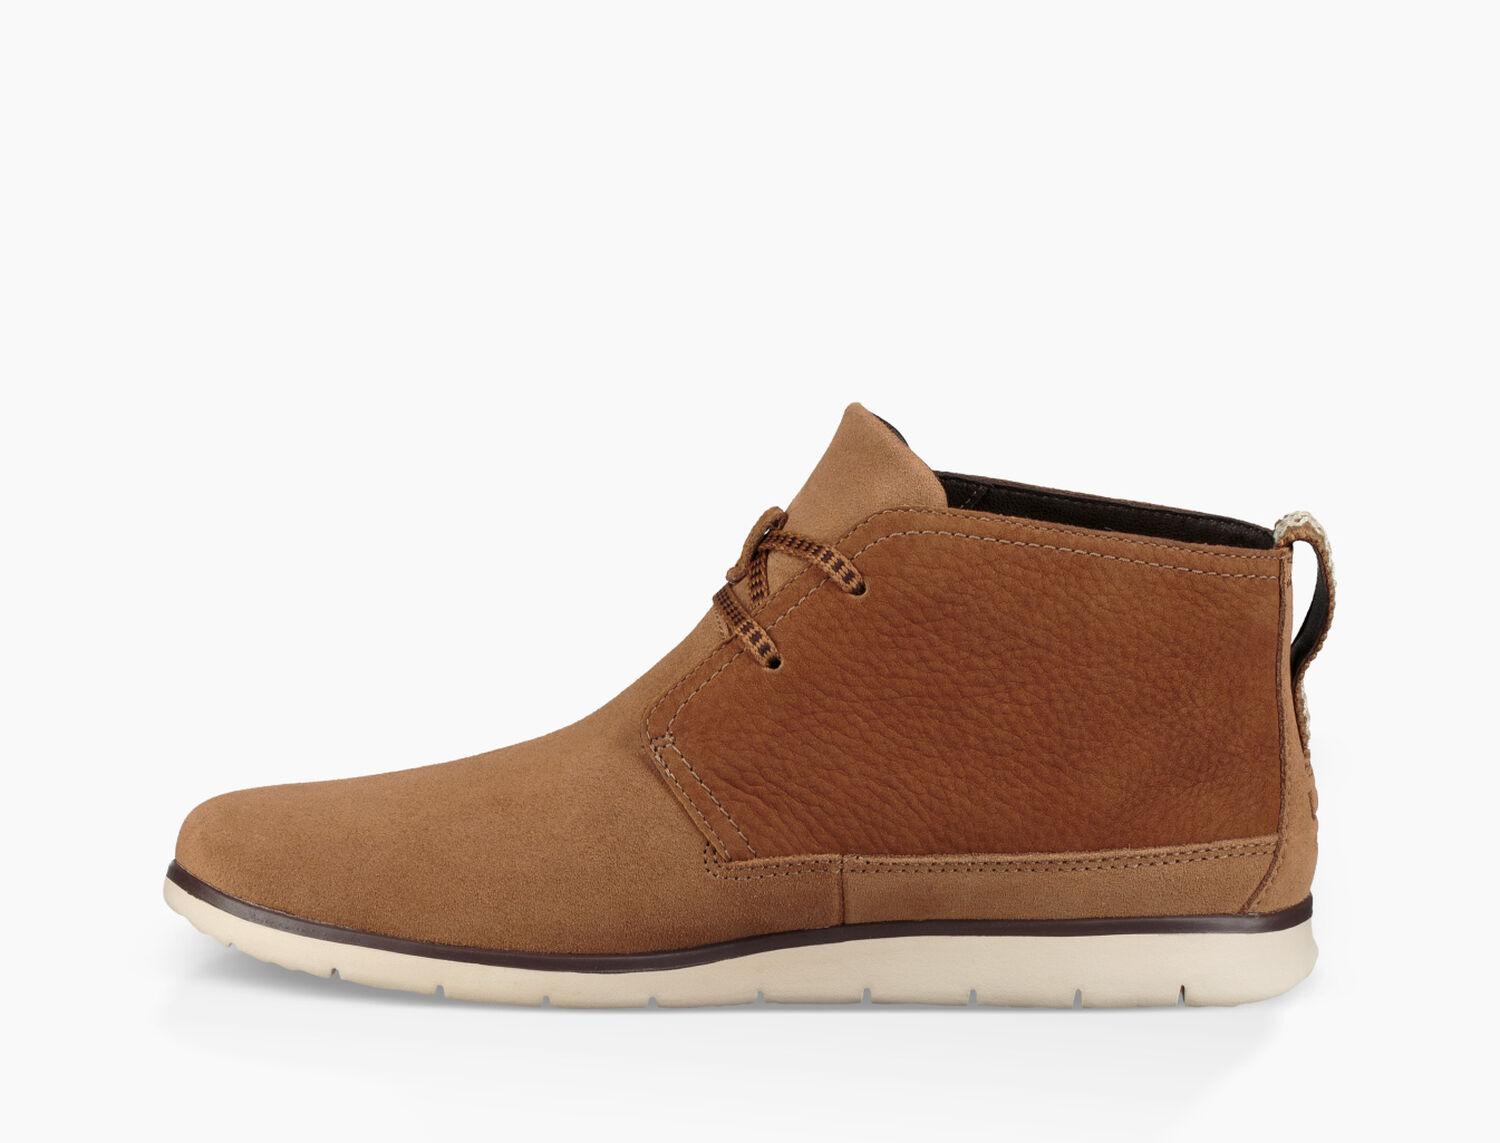 362dd676a39 Men's Share this product Freamon WP Chukka